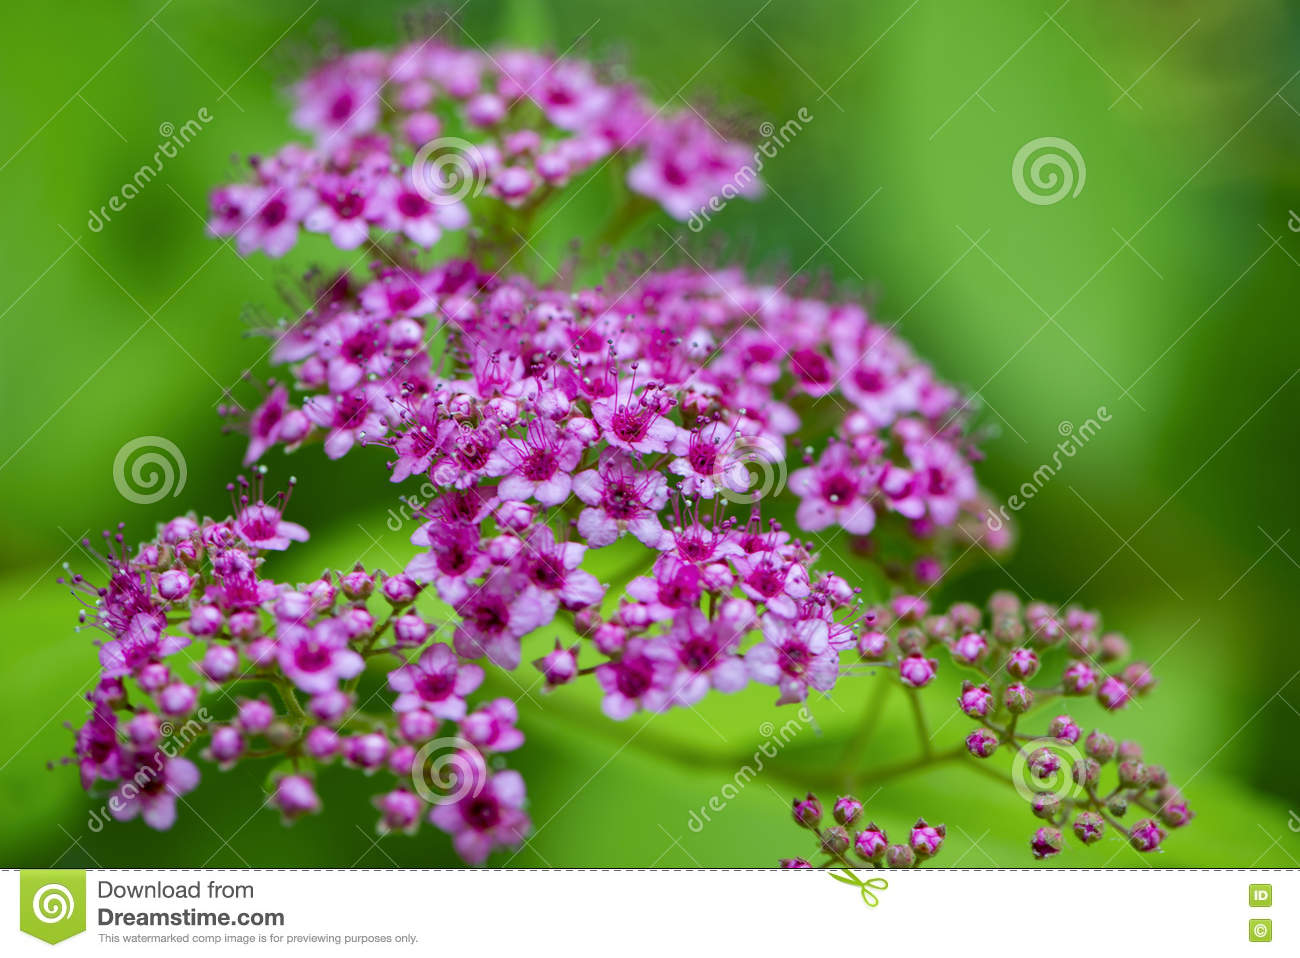 Beautiful Flowers For Cards And Greetings Stock Image Image Of